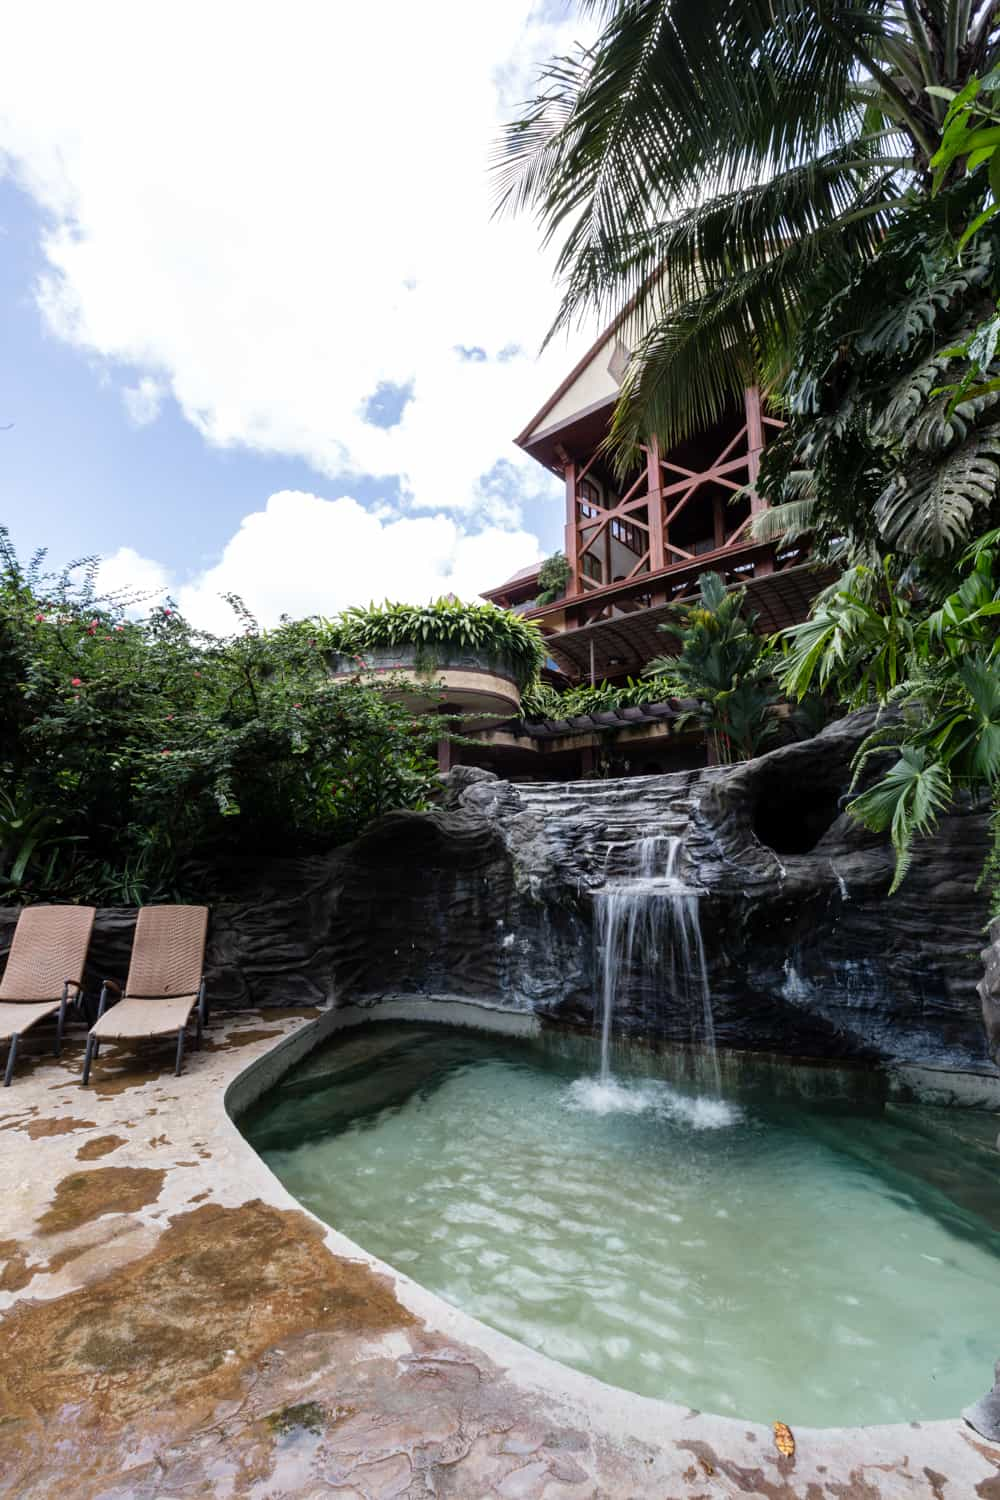 Thermal pool and waterfalls by wedding ceremony location at The Springs Resort & Spa.